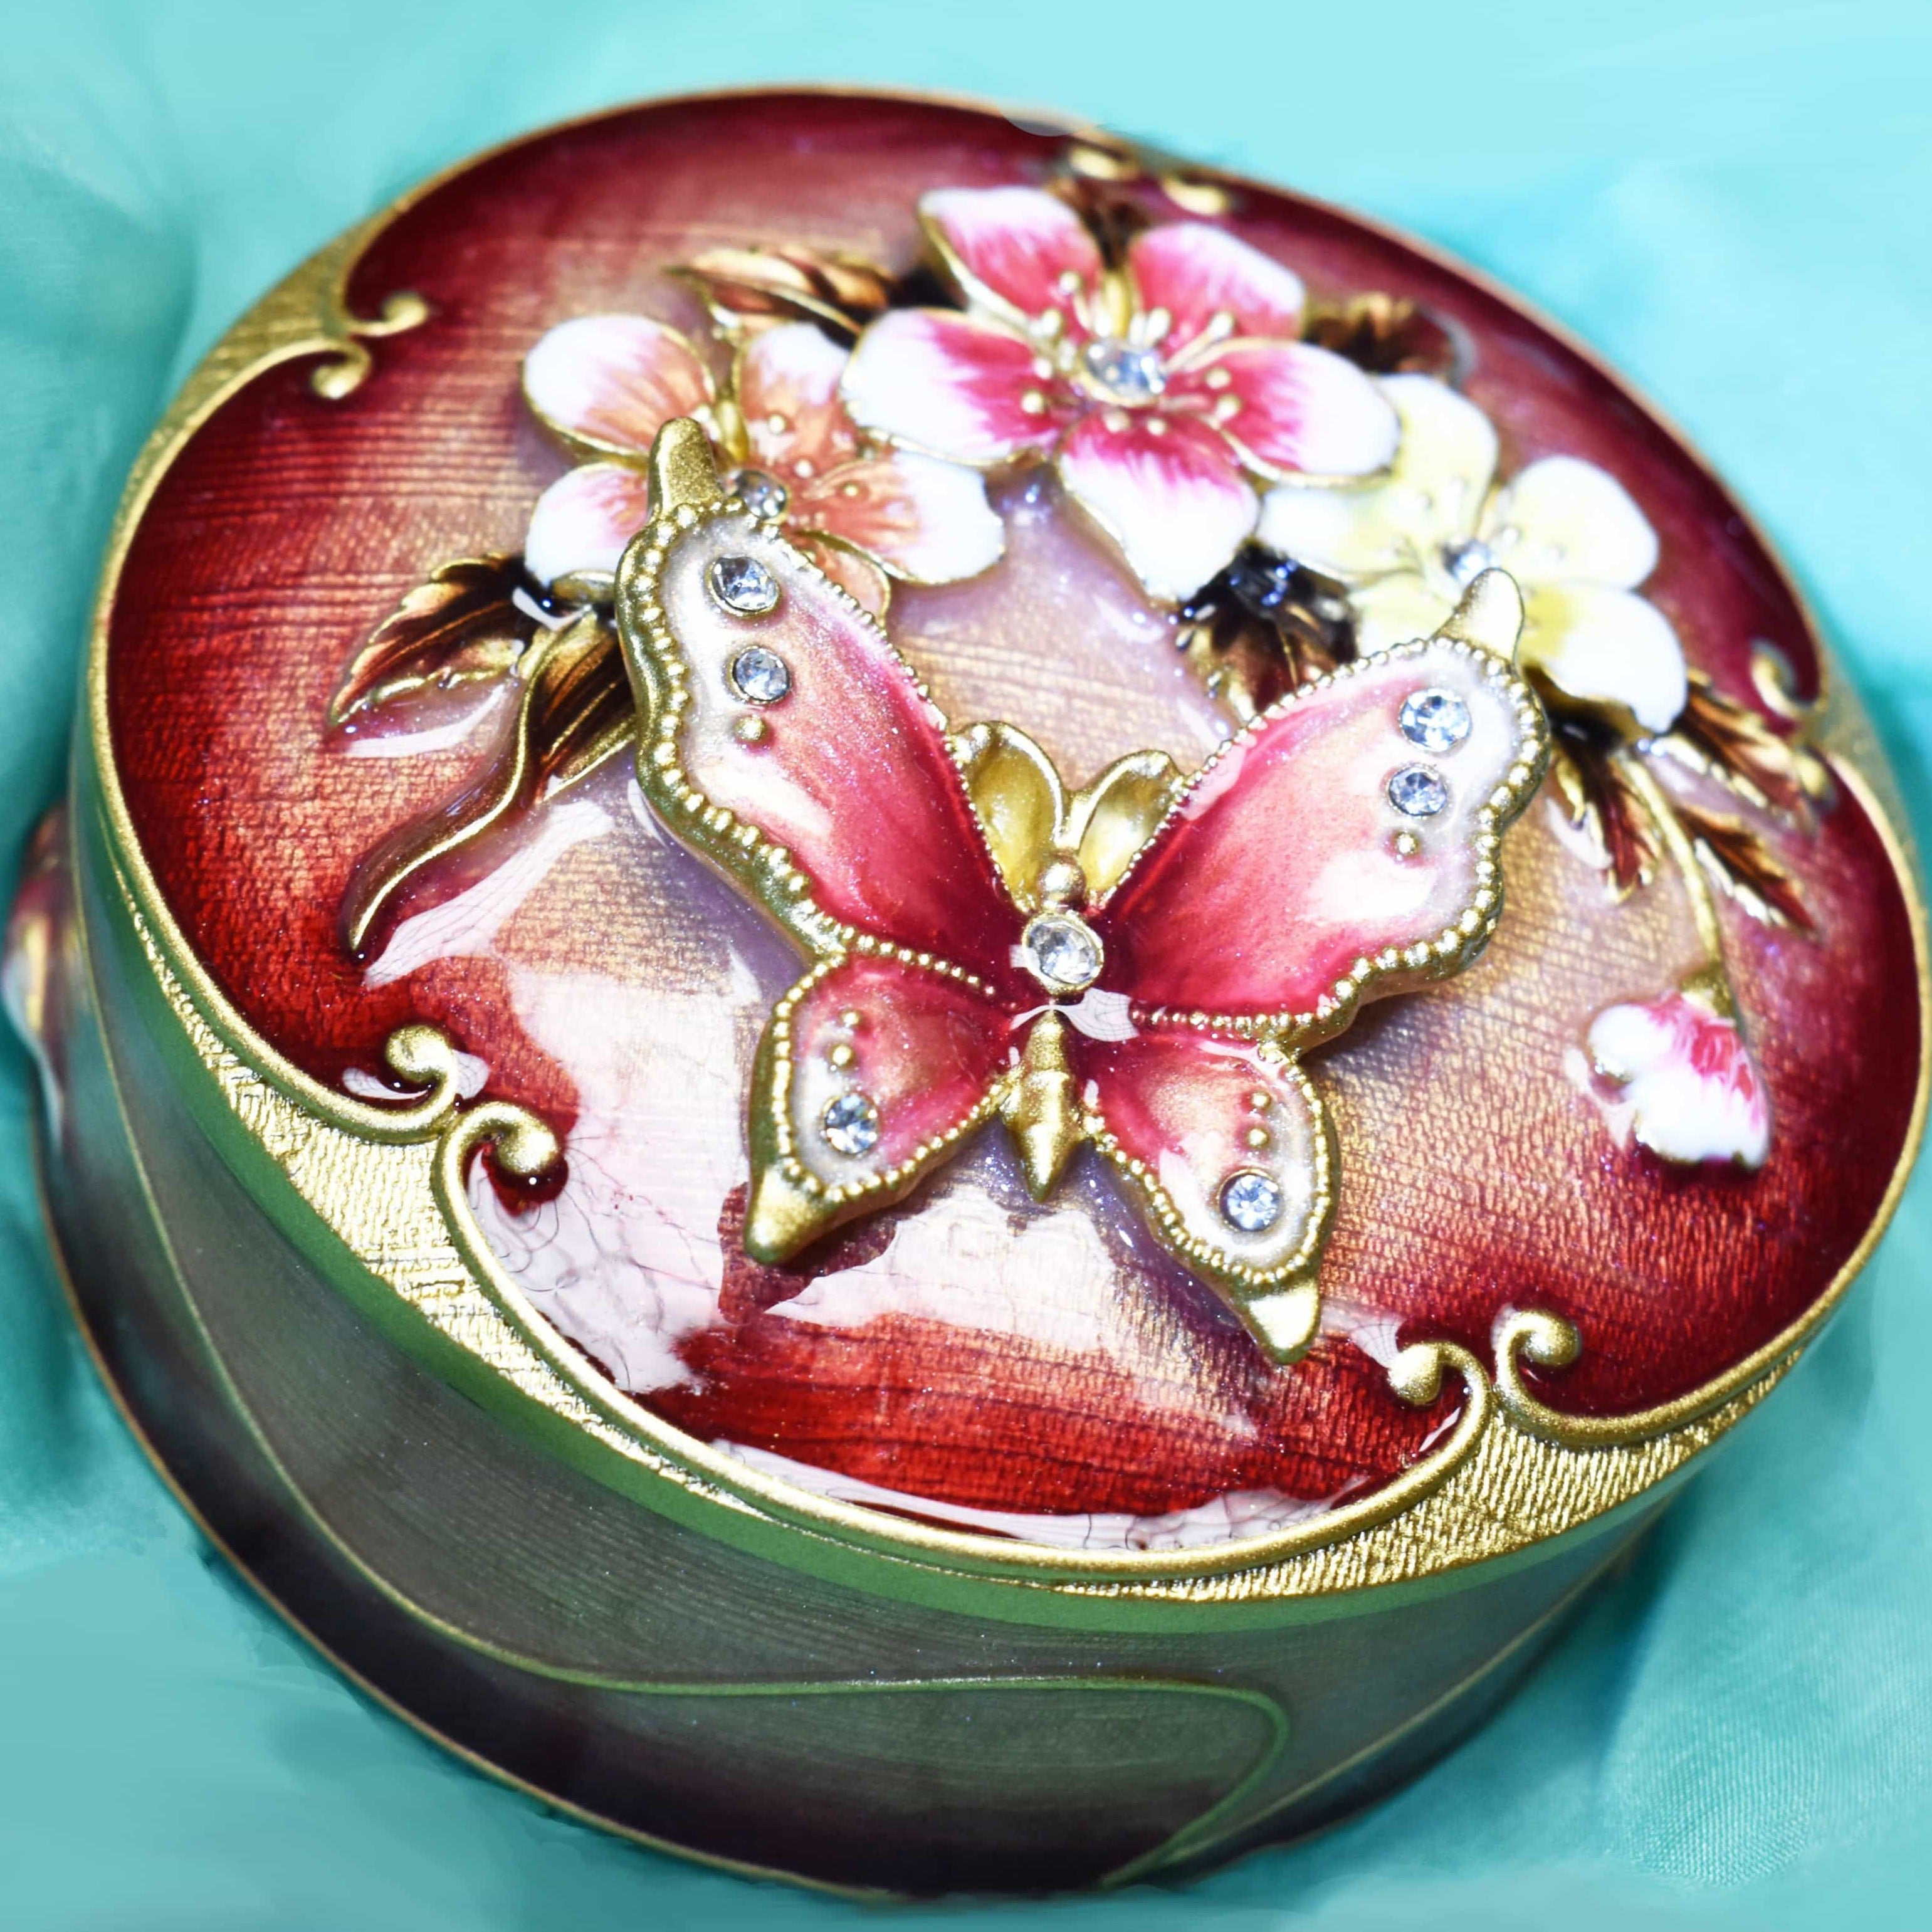 Trinket Box - Round Trinket Box With Metal Butterfly, Burgundy & Gold, With Clear Rhinestones, Trinket Box